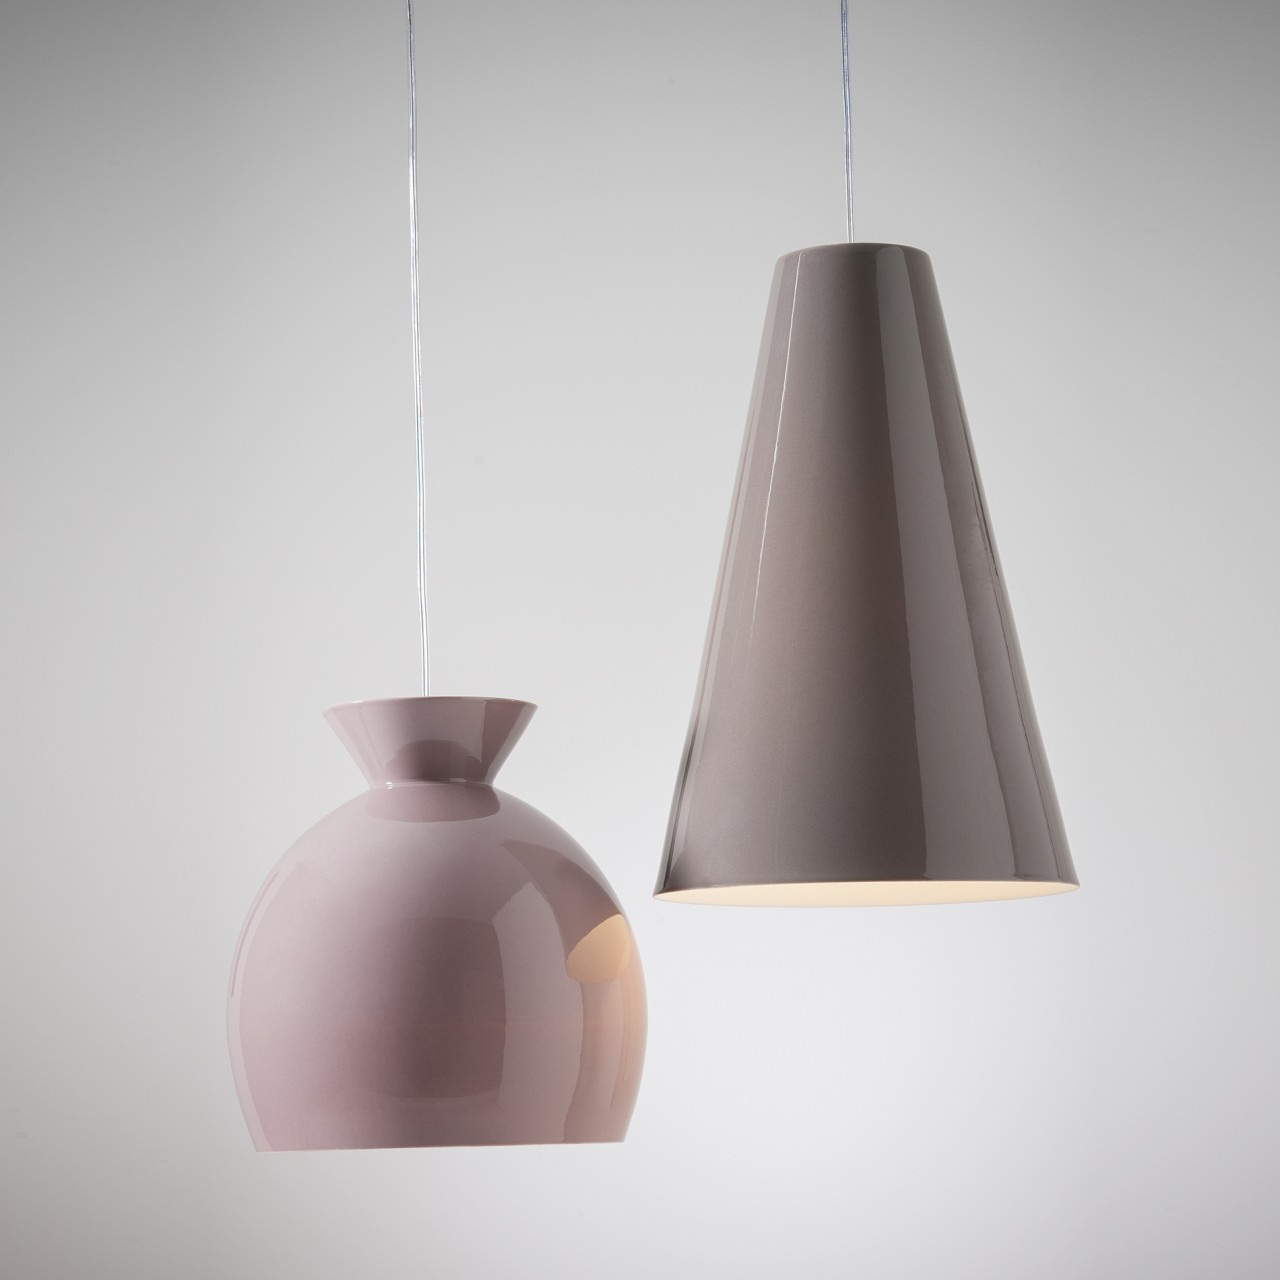 20 porcelain pendant light treasures view in gallery conemporary pendant lamps in glossy pink aloadofball Choice Image